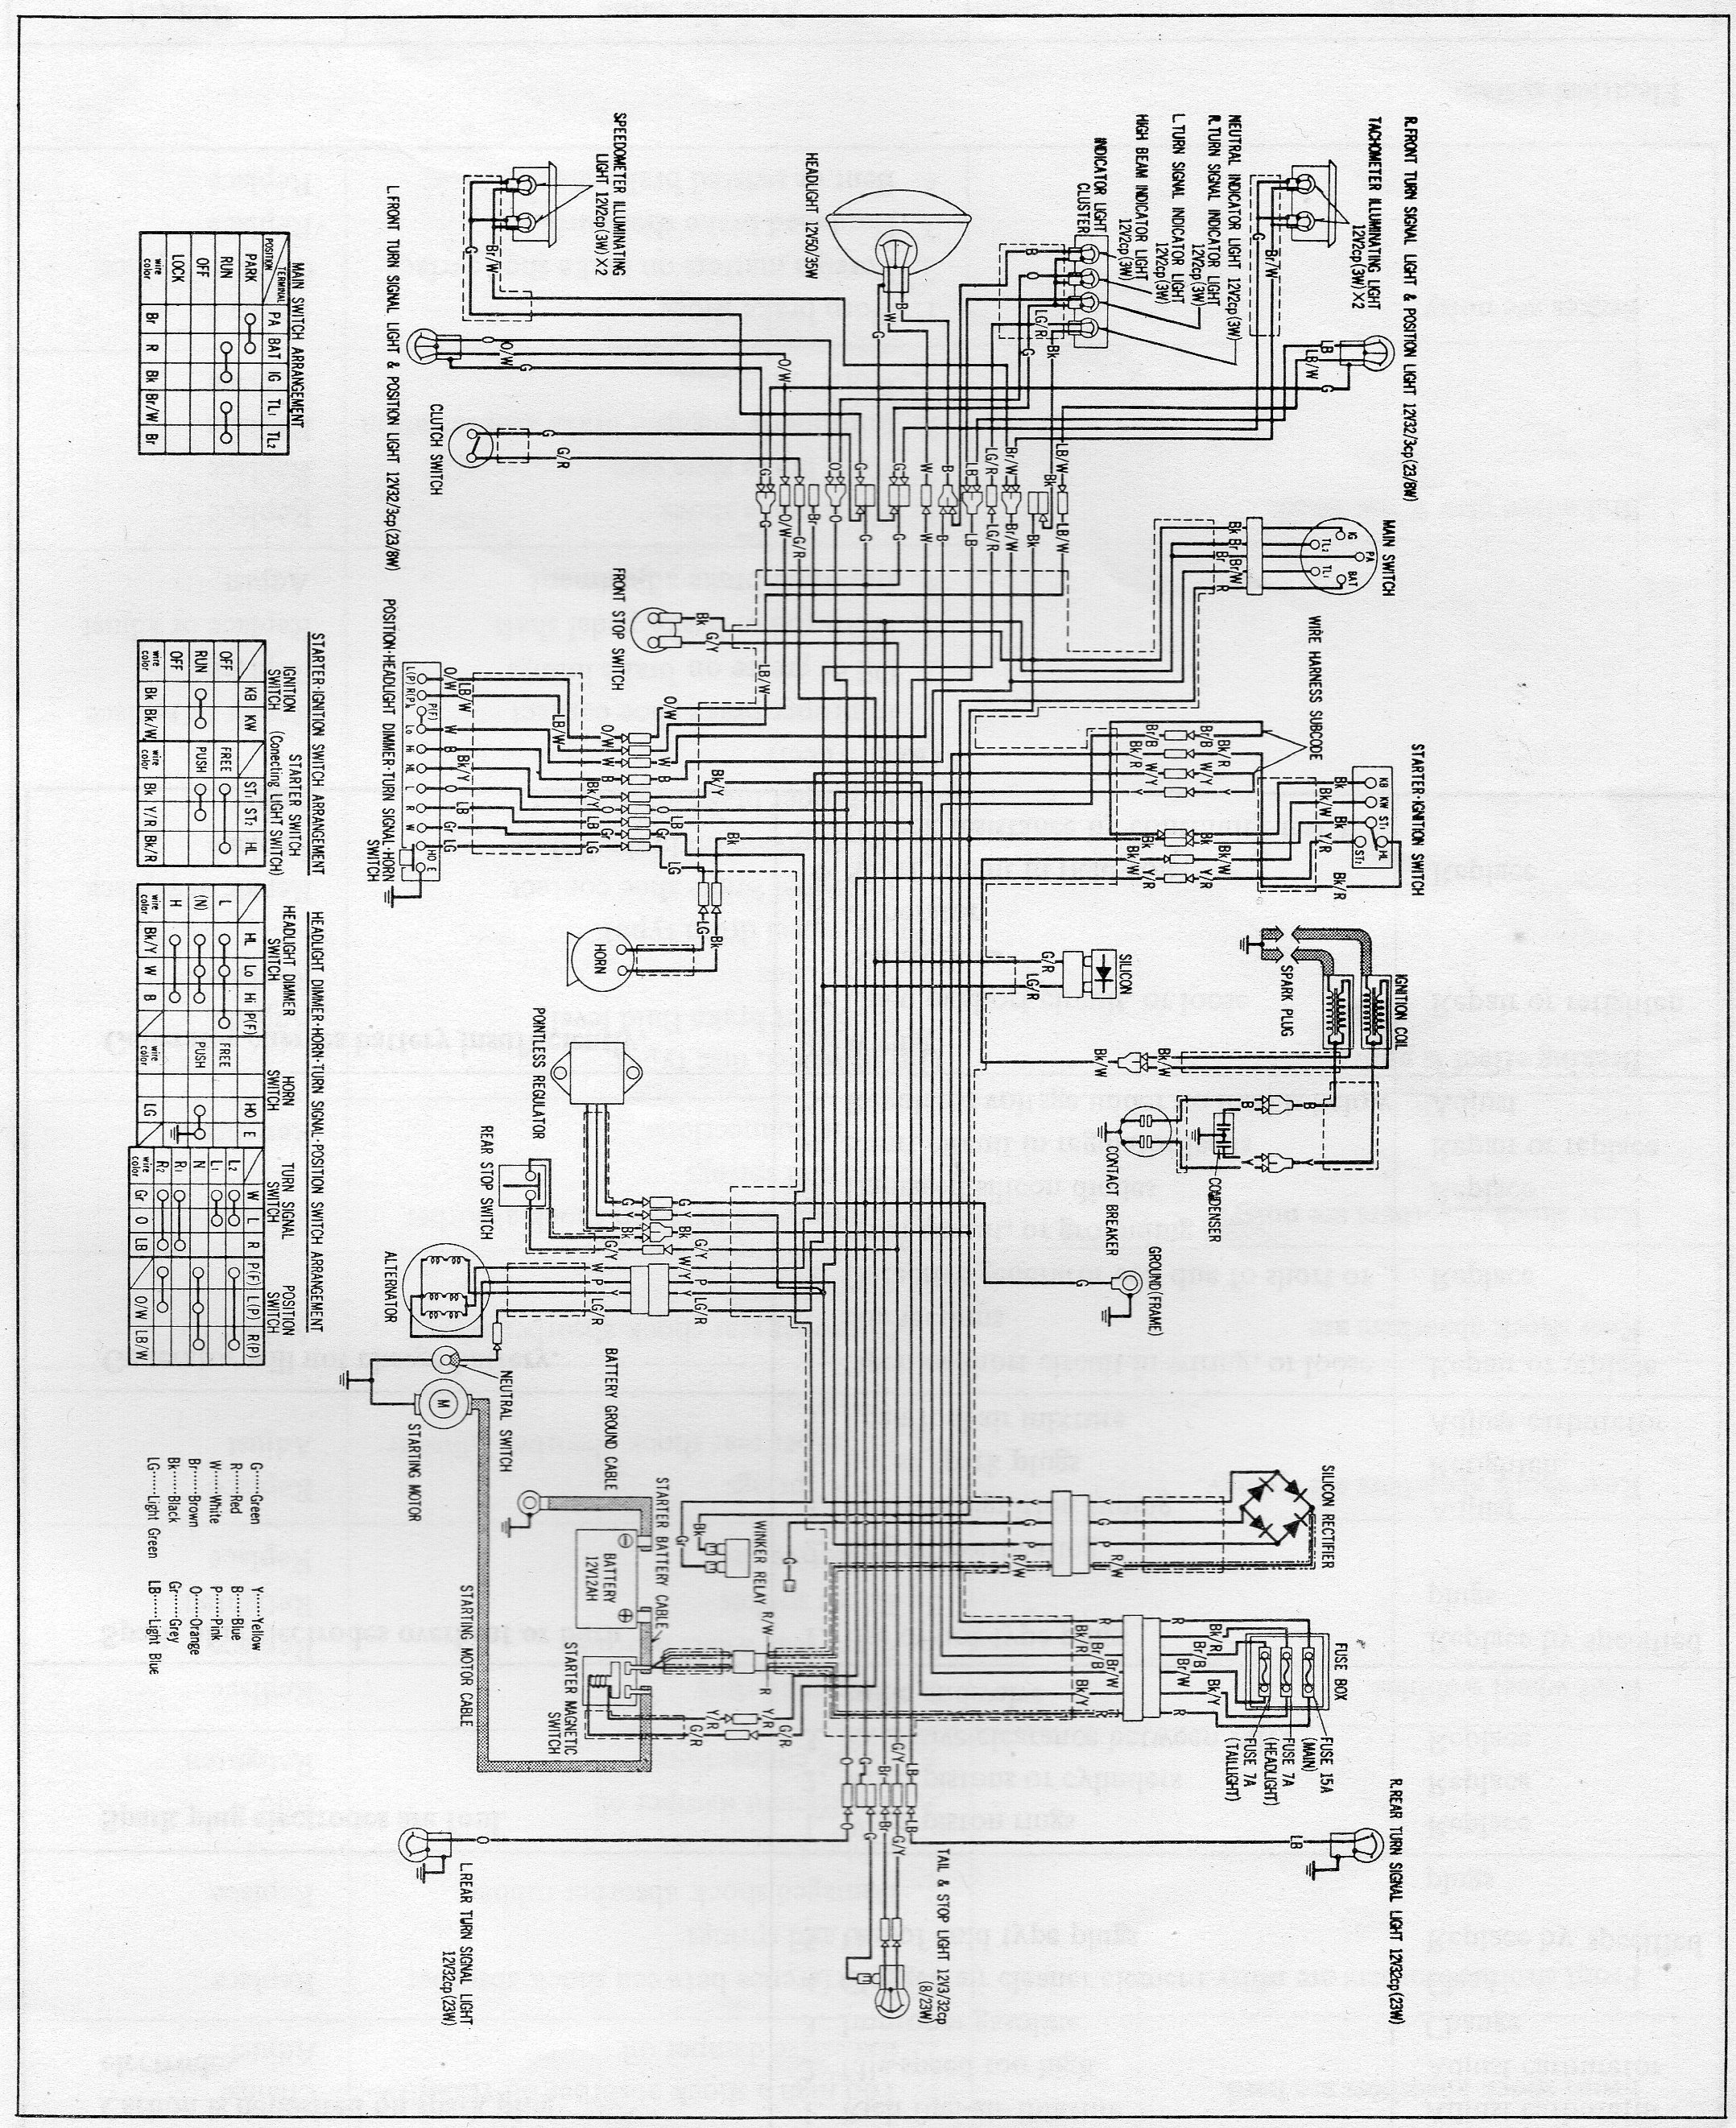 Diagram Palfinger Wiring Diagrams Full Version Hd Quality Wiring Diagrams Diagramrt Hosteria87 It